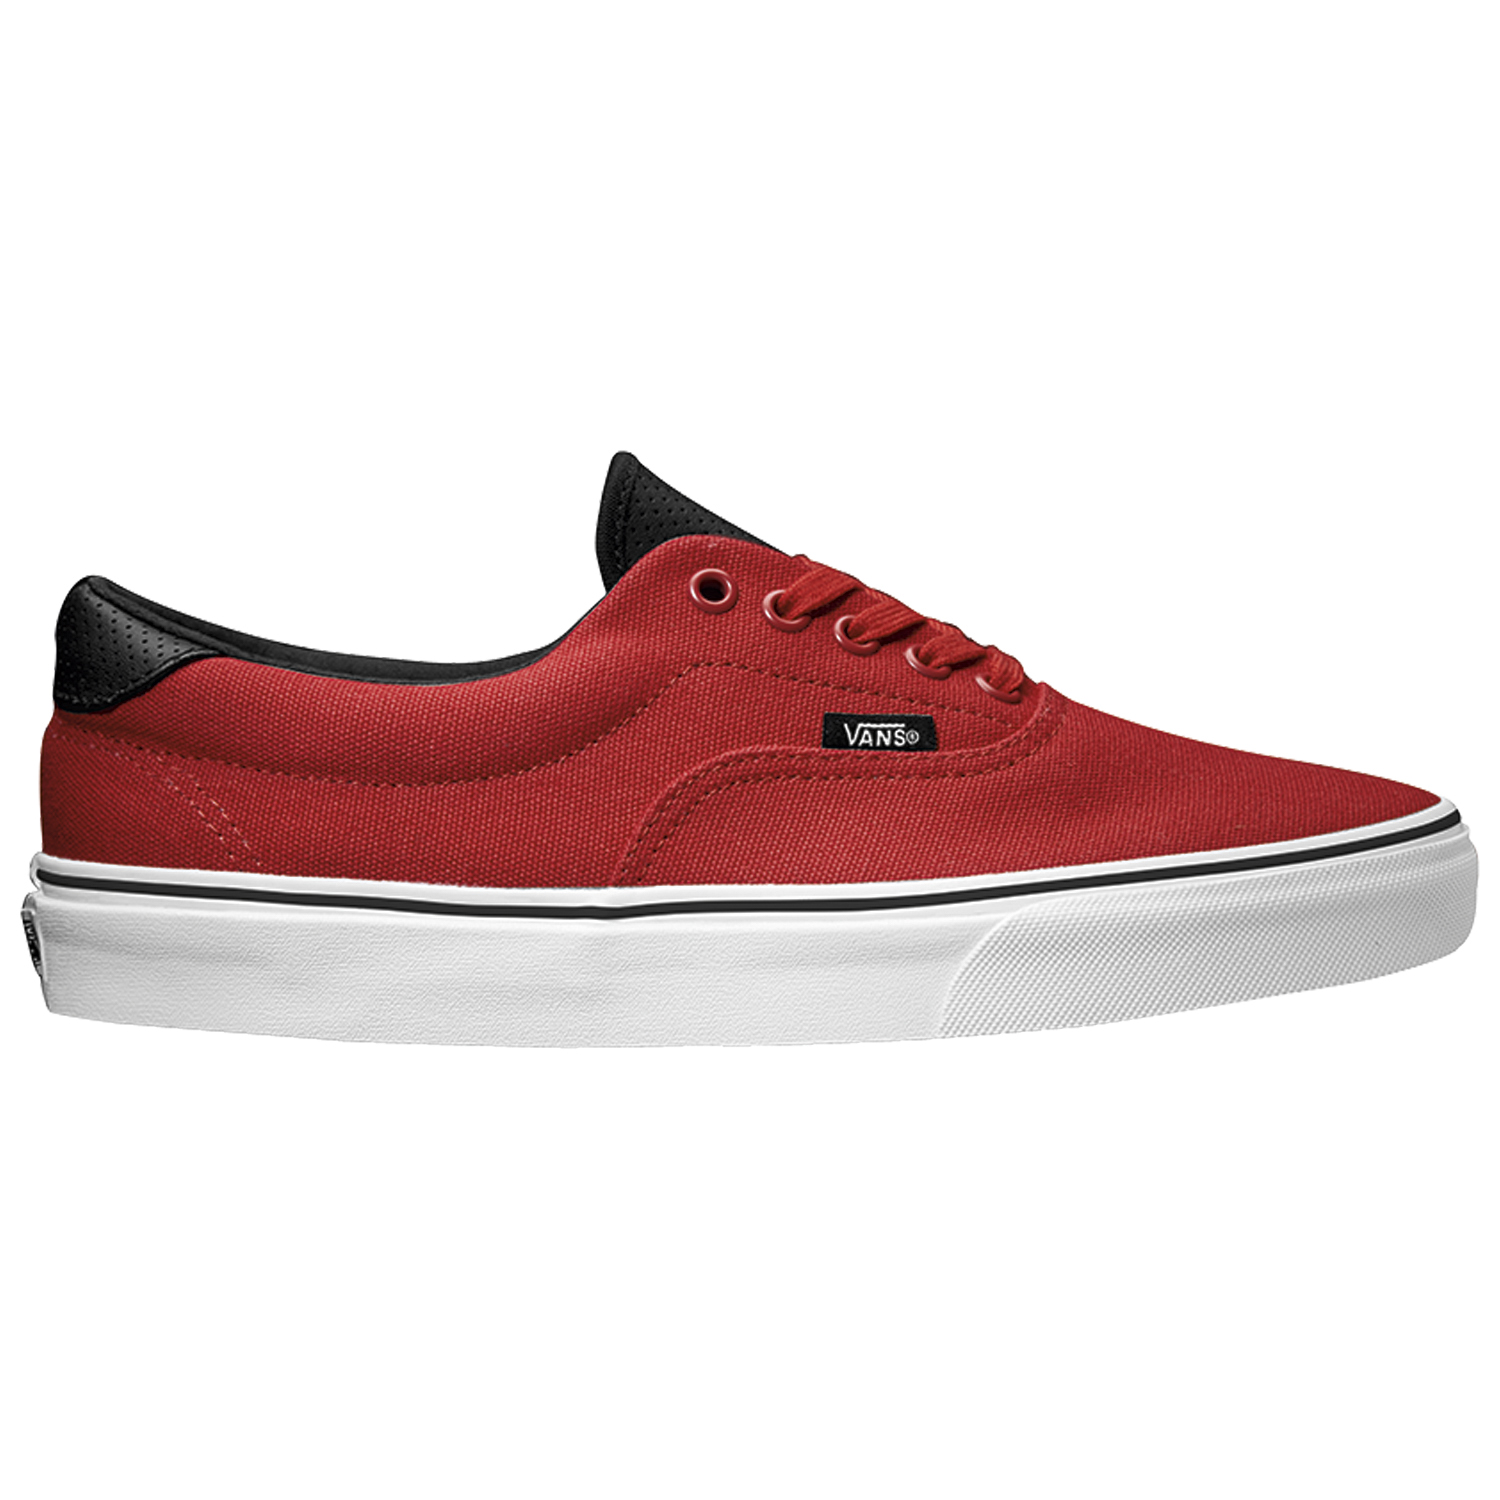 vans-era-59-cp-racing-red-black-119-90